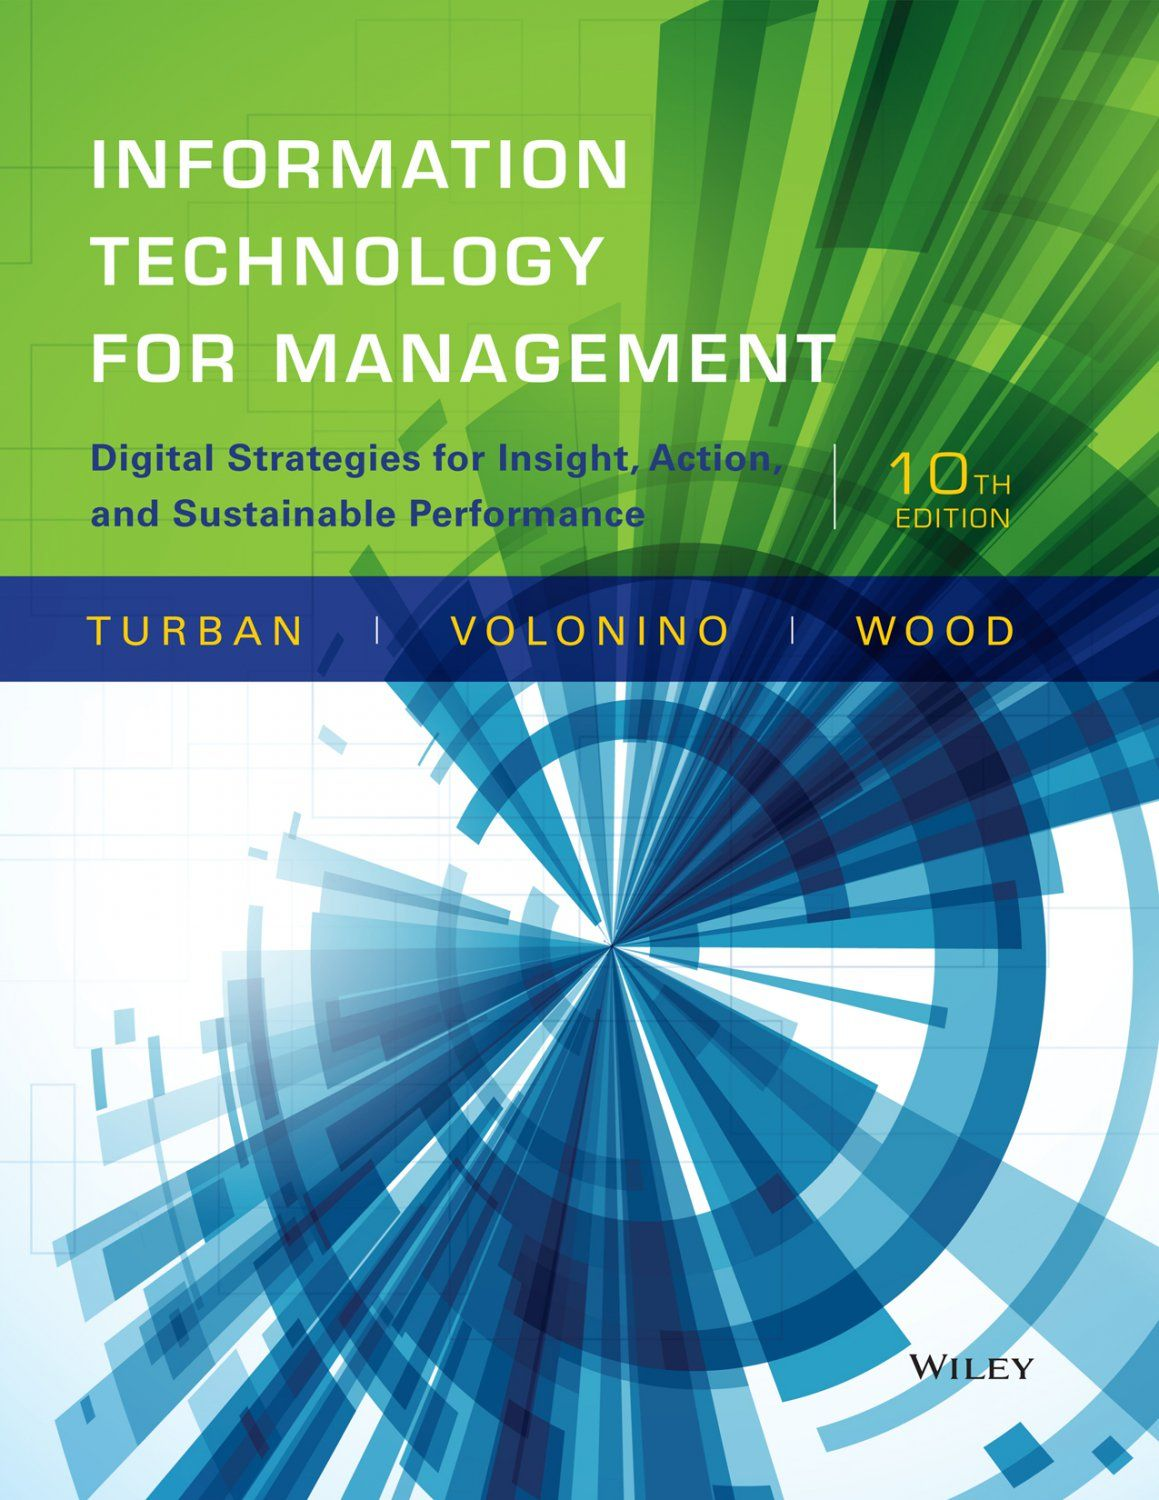 Information technology for management 10th edition by efraim turban information technology for management 10th edition by efraim turban ebook pdf fandeluxe Gallery